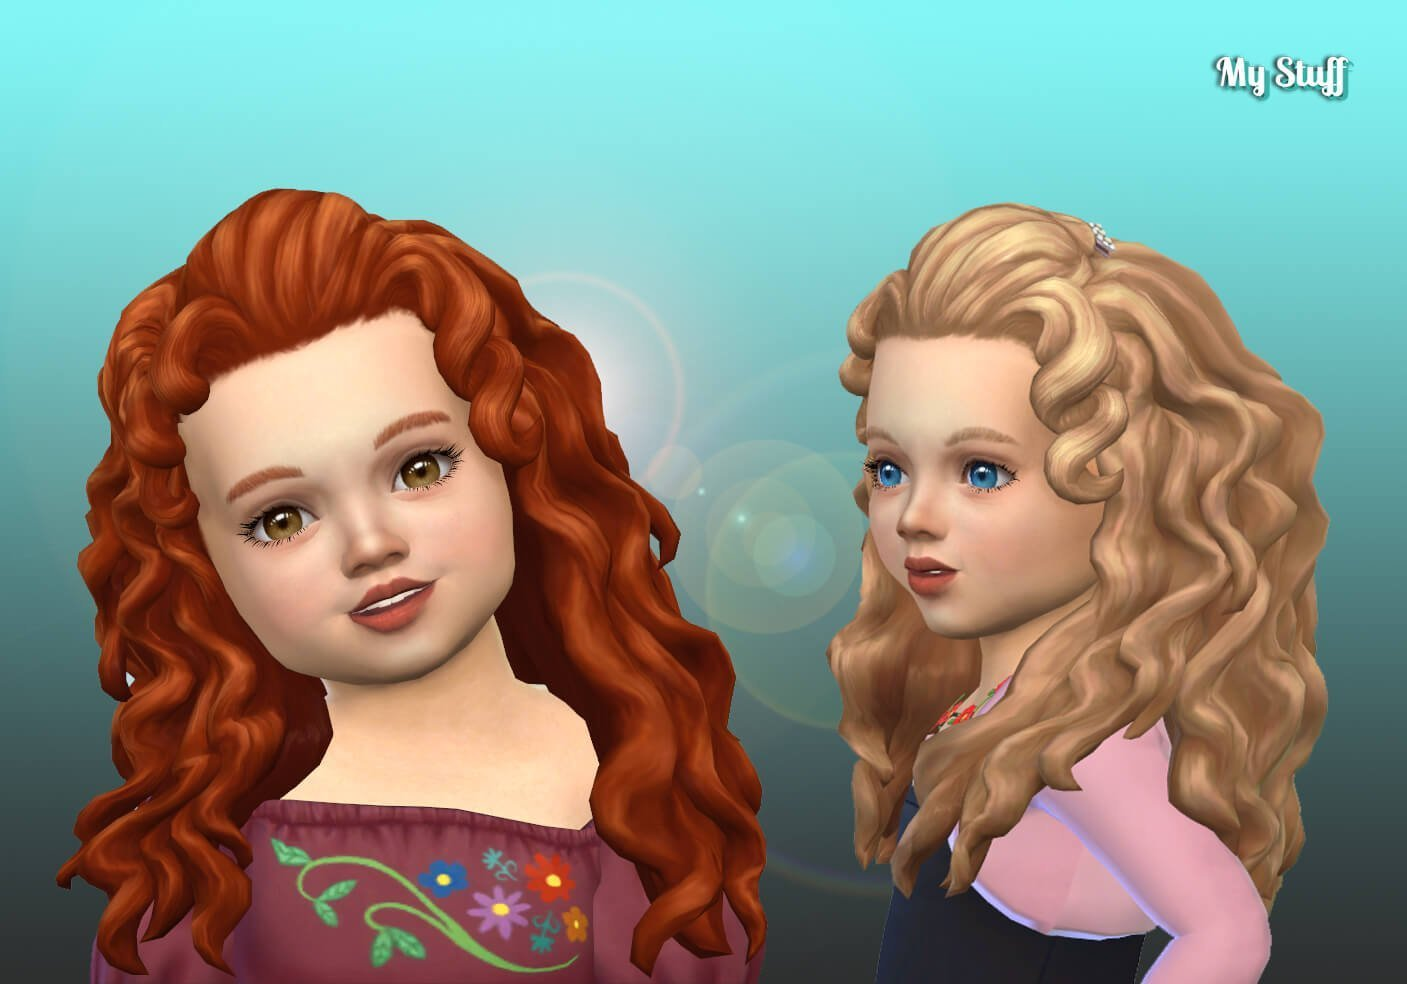 Melinda Hairstyle for Toddlers